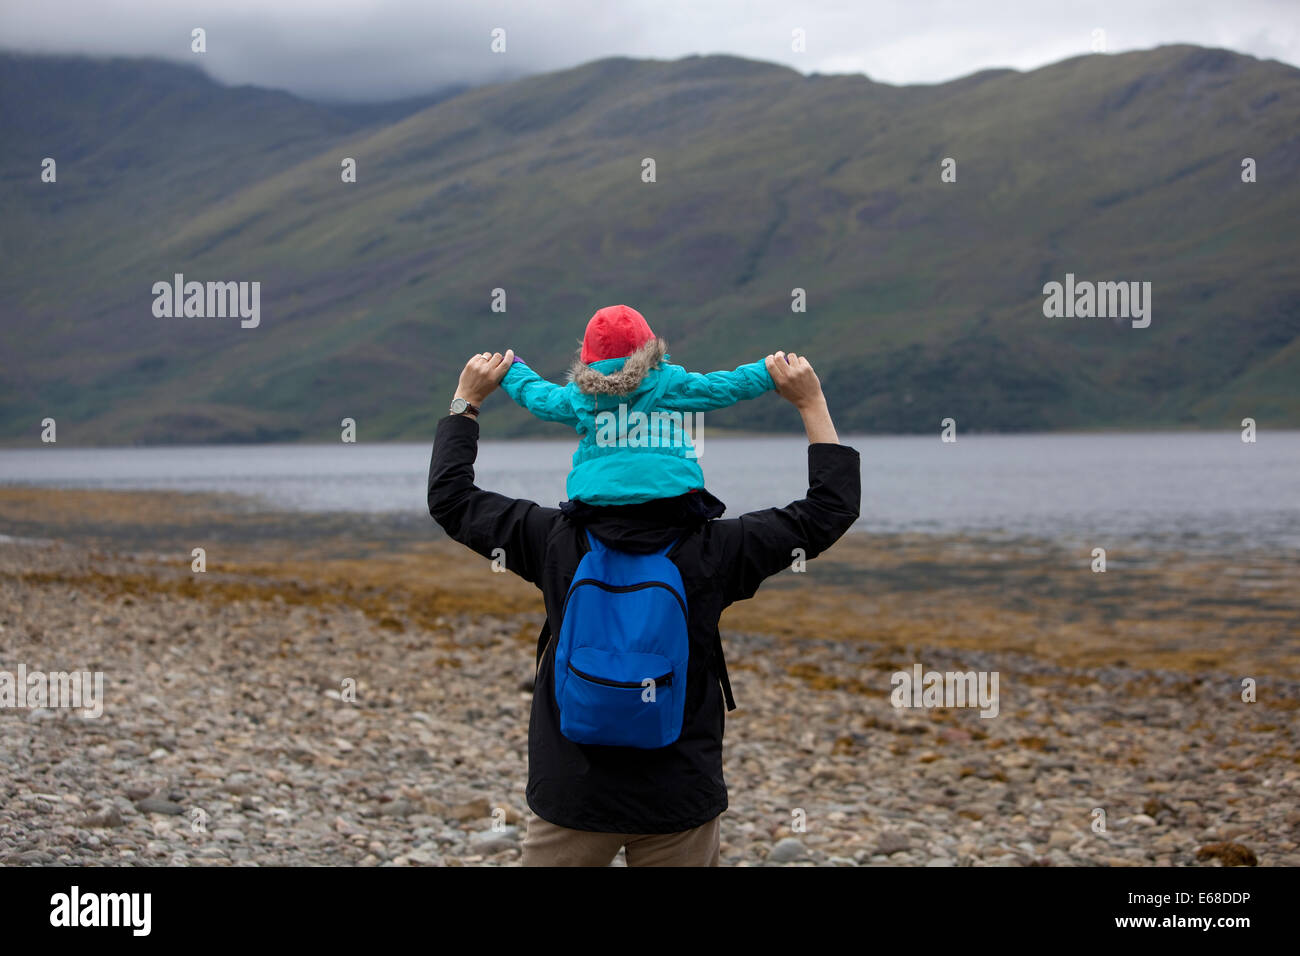 Father with child on his shoulders, walking along a pebble beach in Scotland. - Stock Image